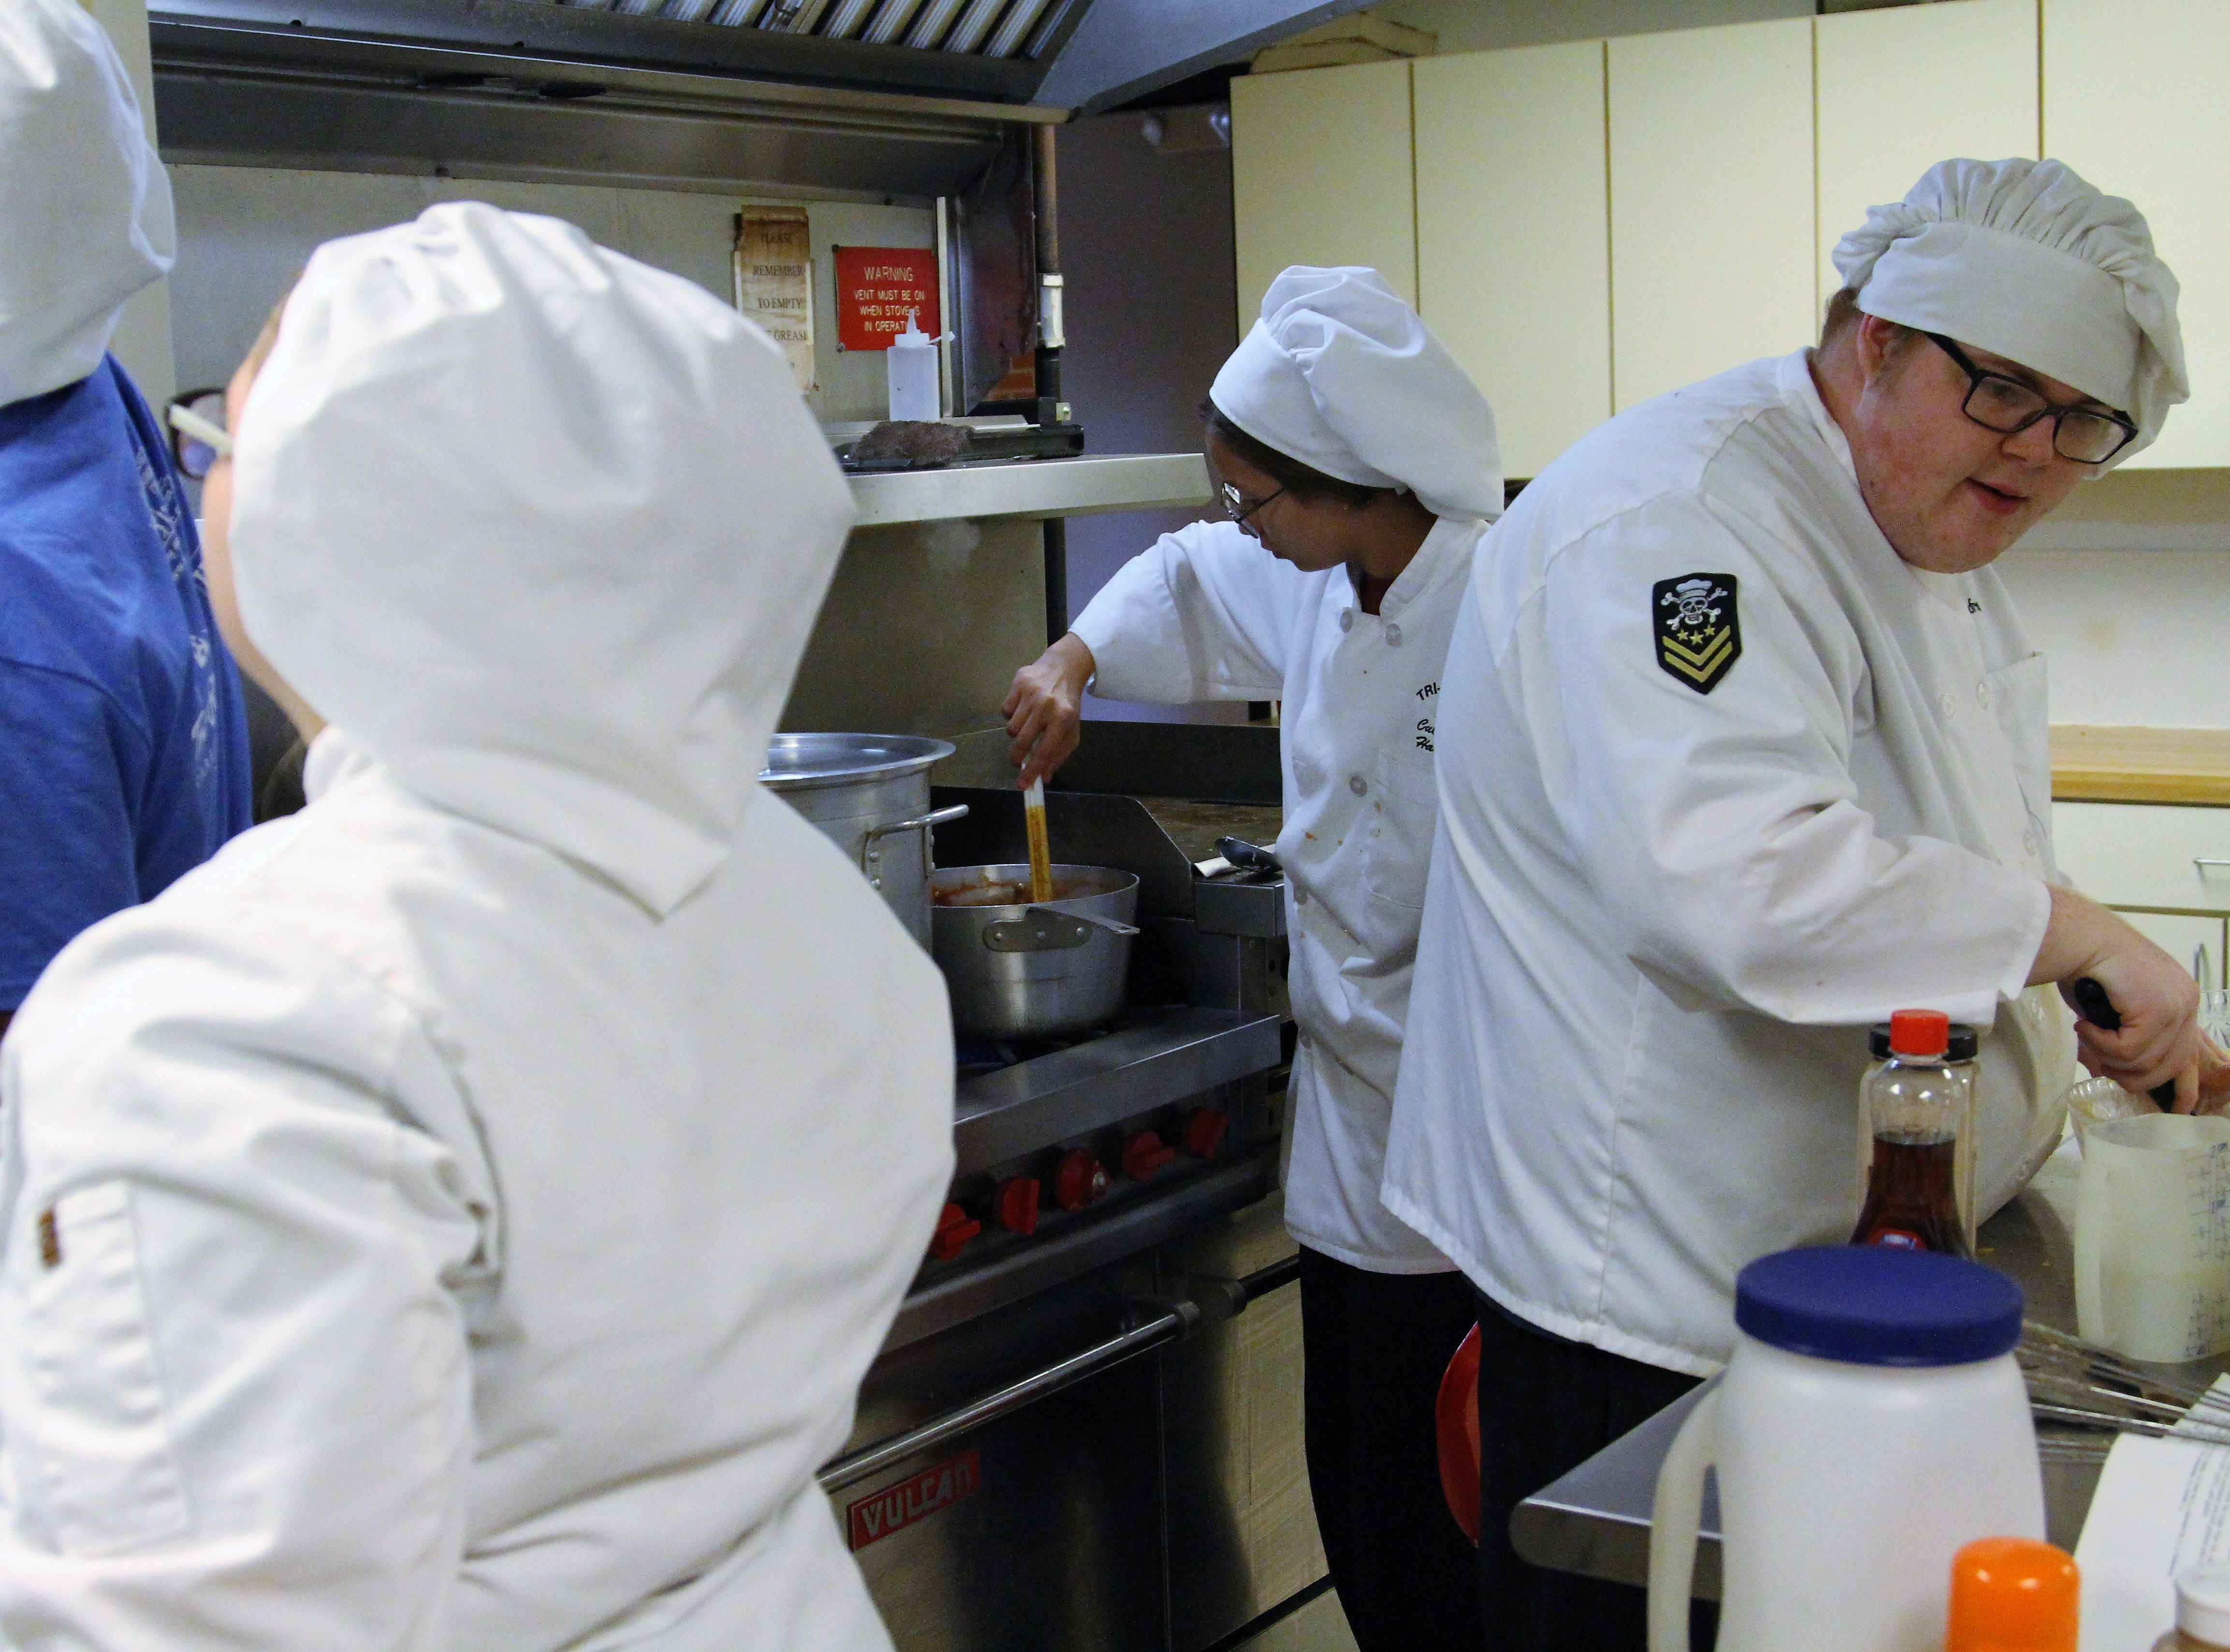 Culinary students navigate around each other in a busy kitchen at Salvation Army on Friday. They were cooking meals there as part of Make A Difference Day, a collaboration between Tri-Rivers Career Center and the United Way.